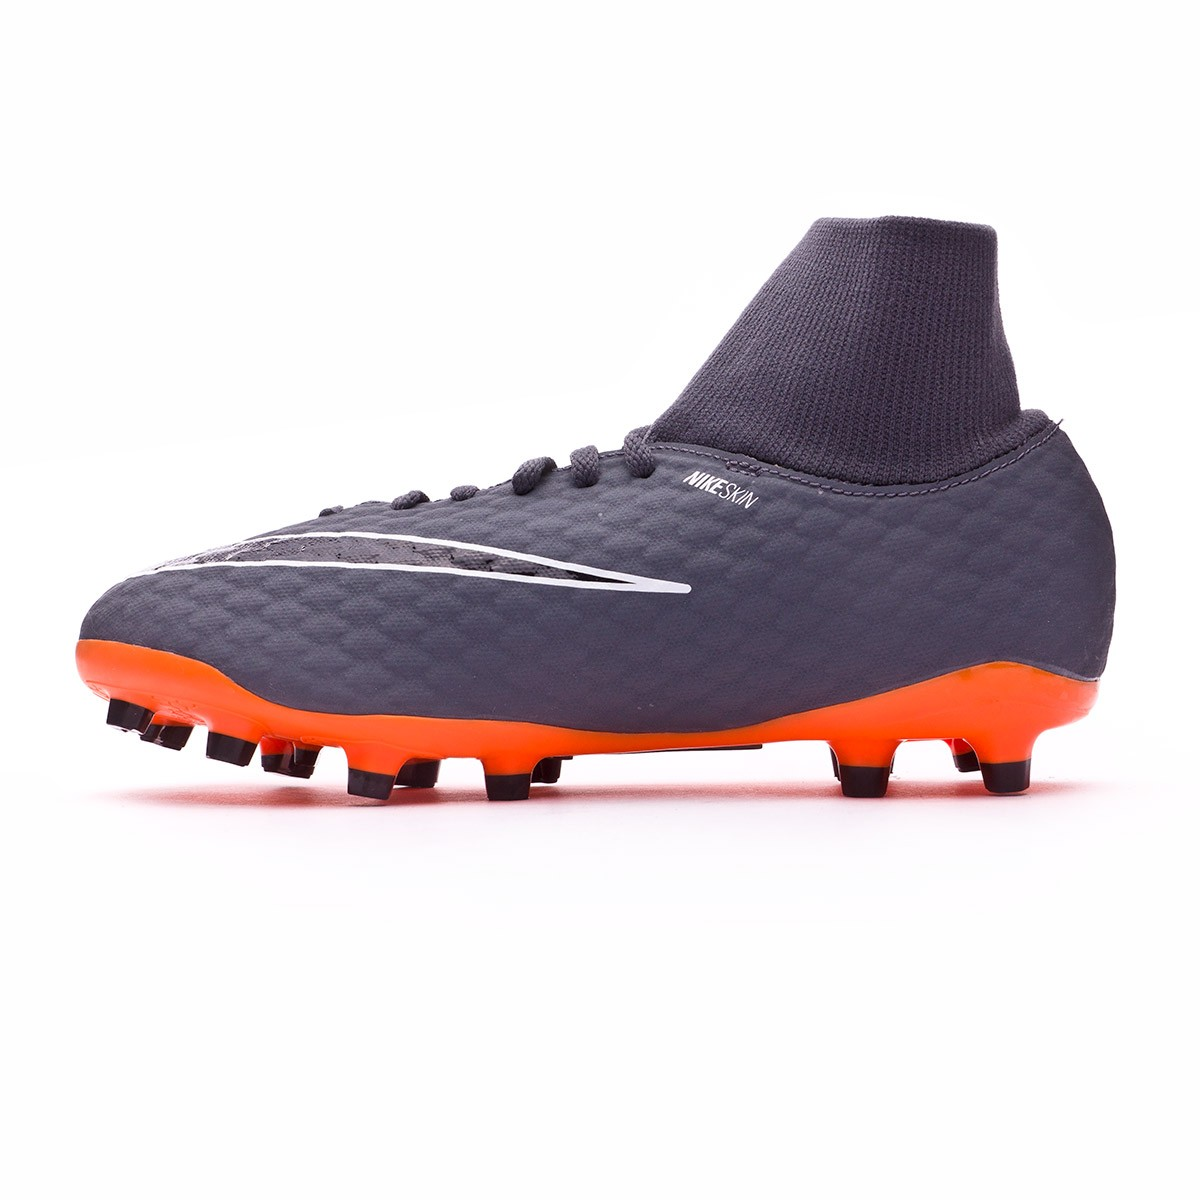 6cac9e97aed Football Boots Nike Kids Hypervenom Phantom III Academy DF FG Dark  grey-Total orange-White - Tienda de fútbol Fútbol Emotion